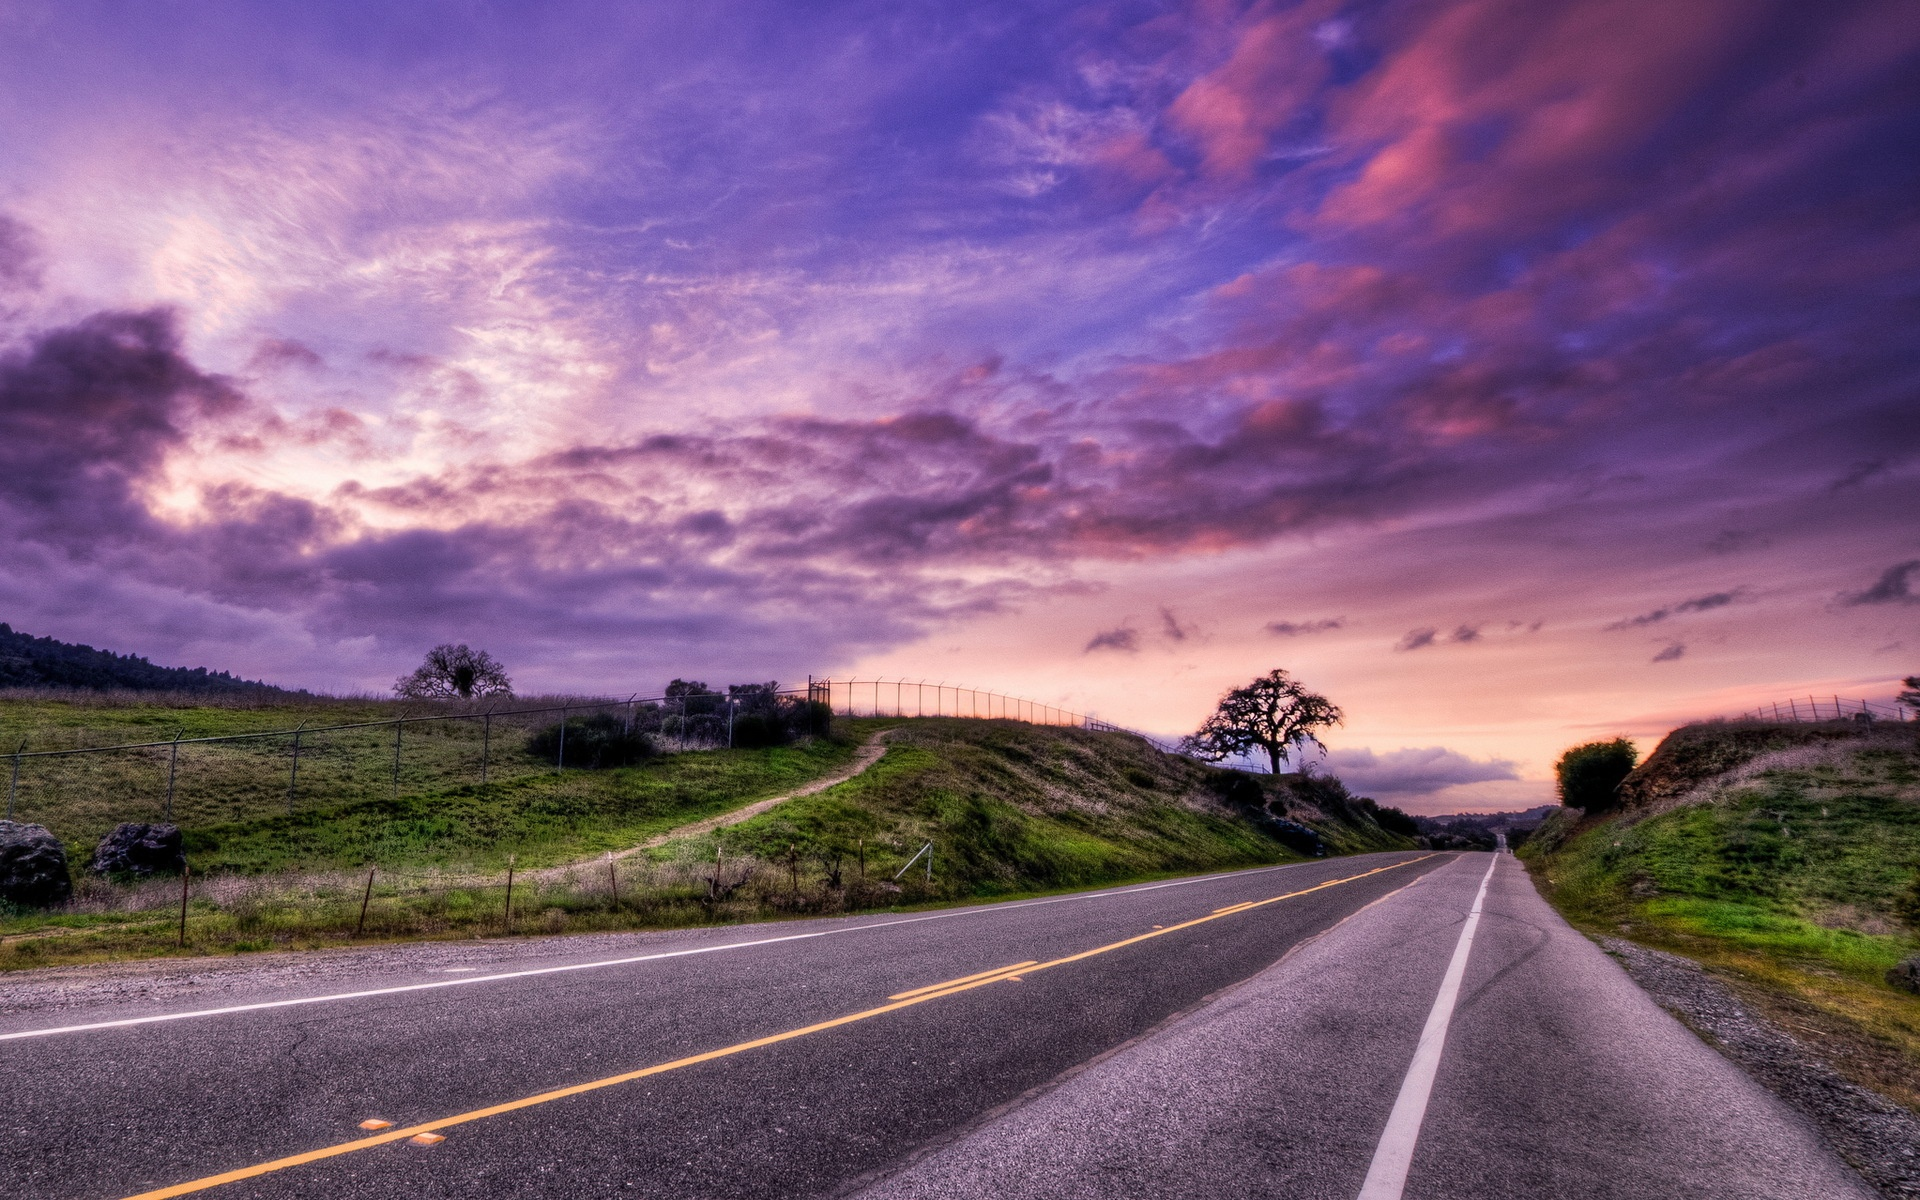 Sunset Road Landscape Wallpapers